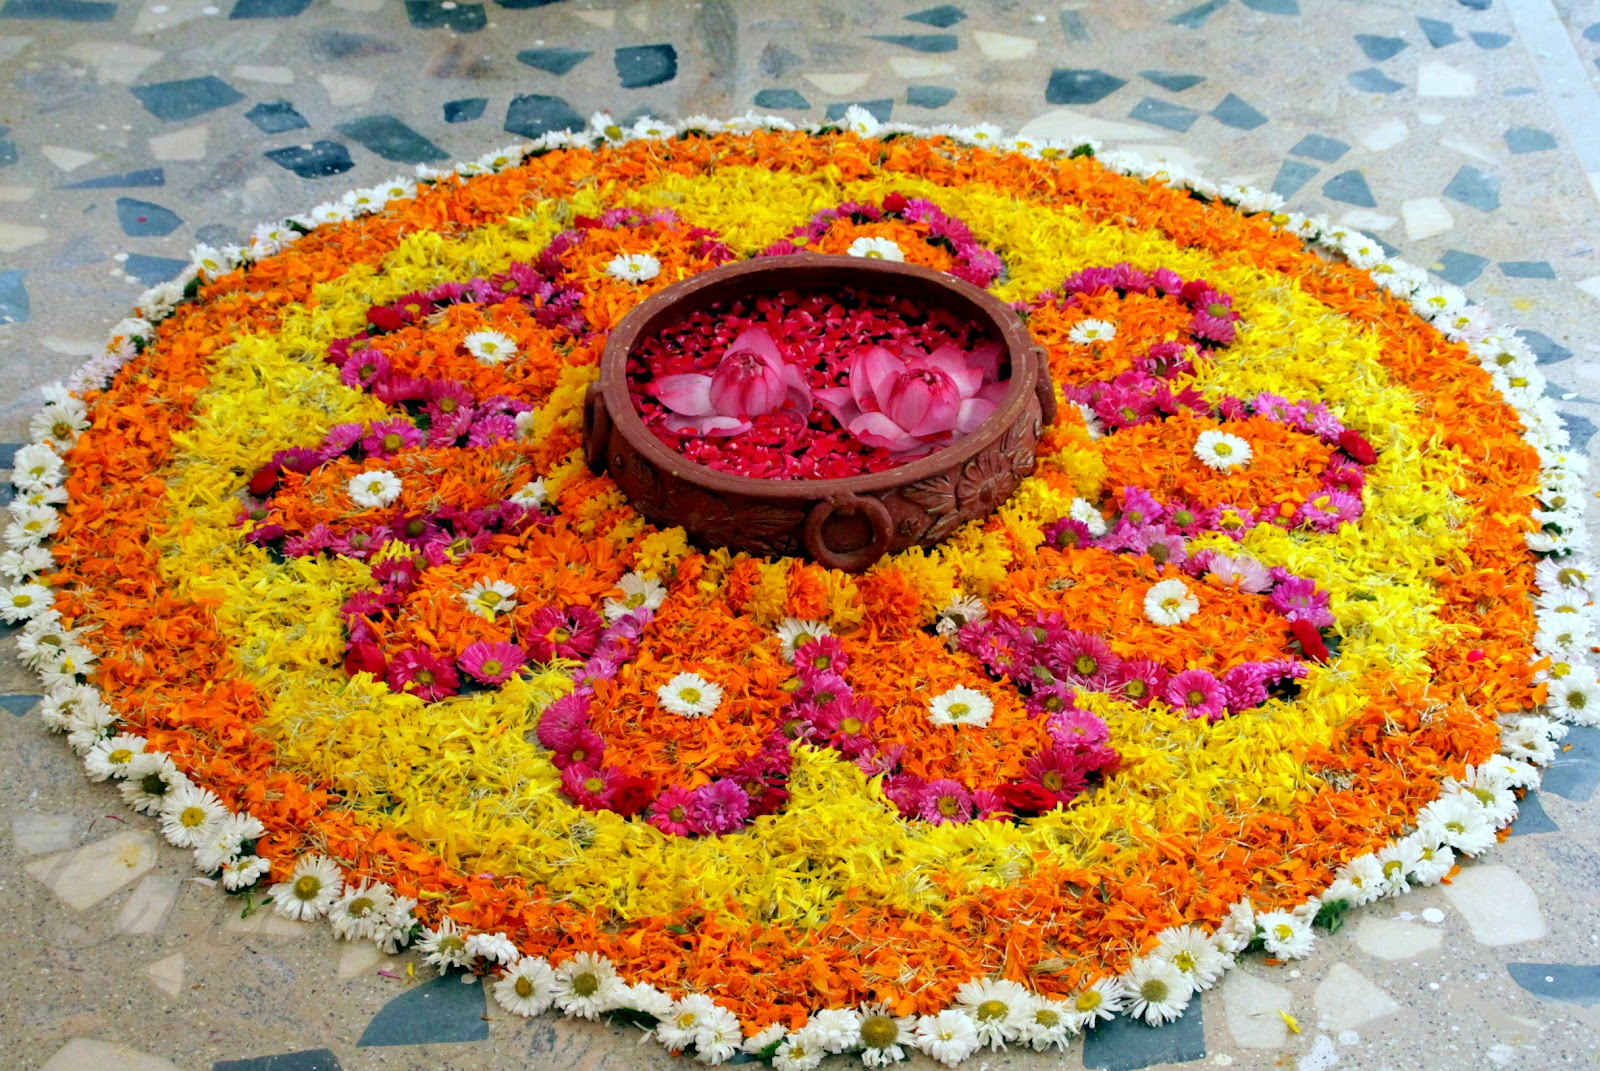 pookalam - onam celebrations